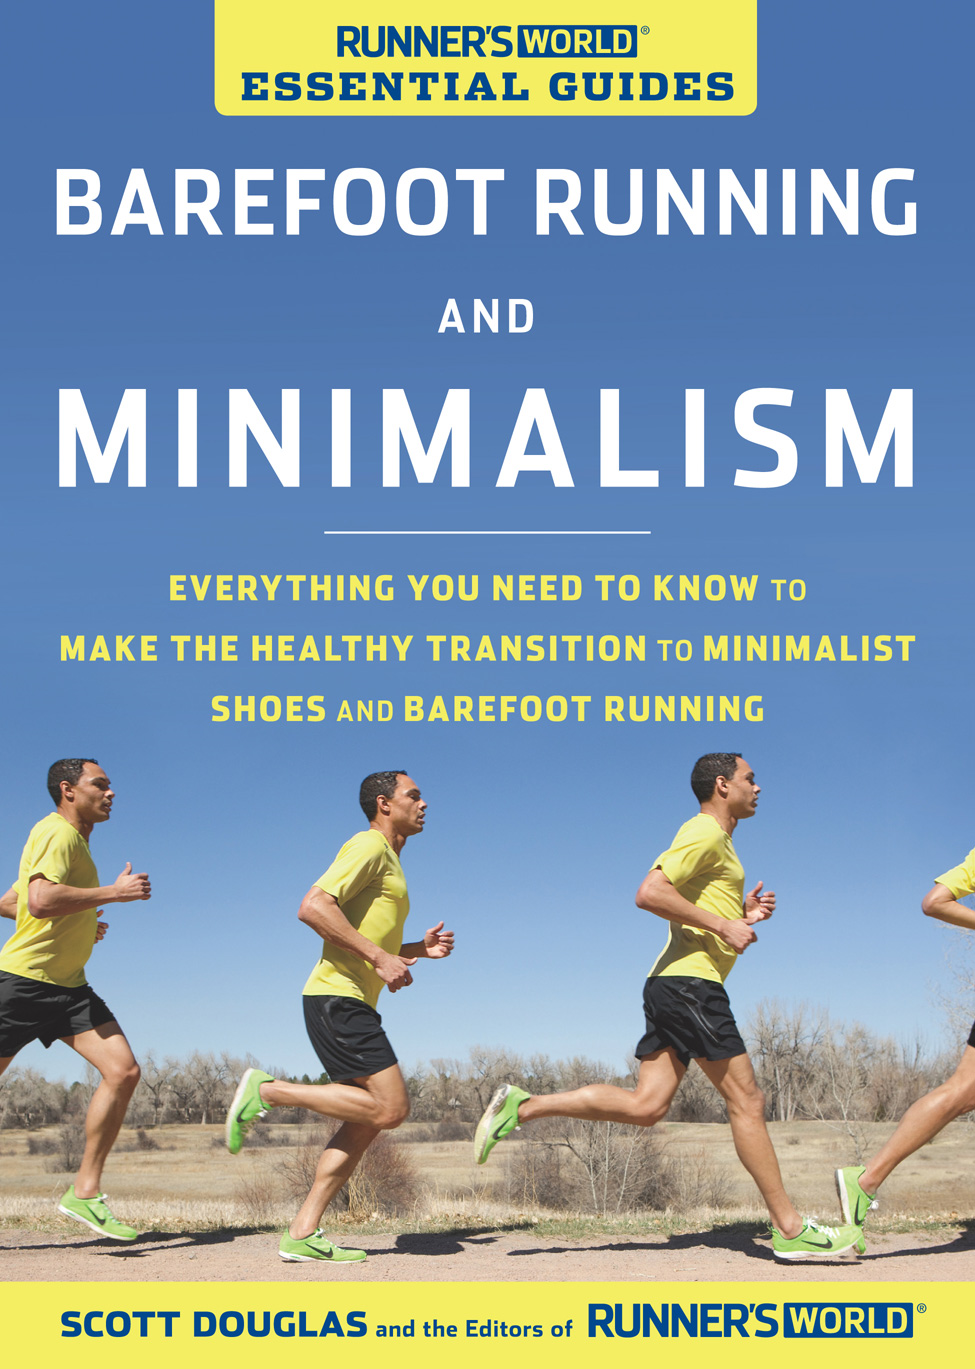 Runner's World Essential Guides: Barefoot Running and Minimalism: Everything You Need to Know to Make the Healthy Transition to Minimalism and Barefoot Running